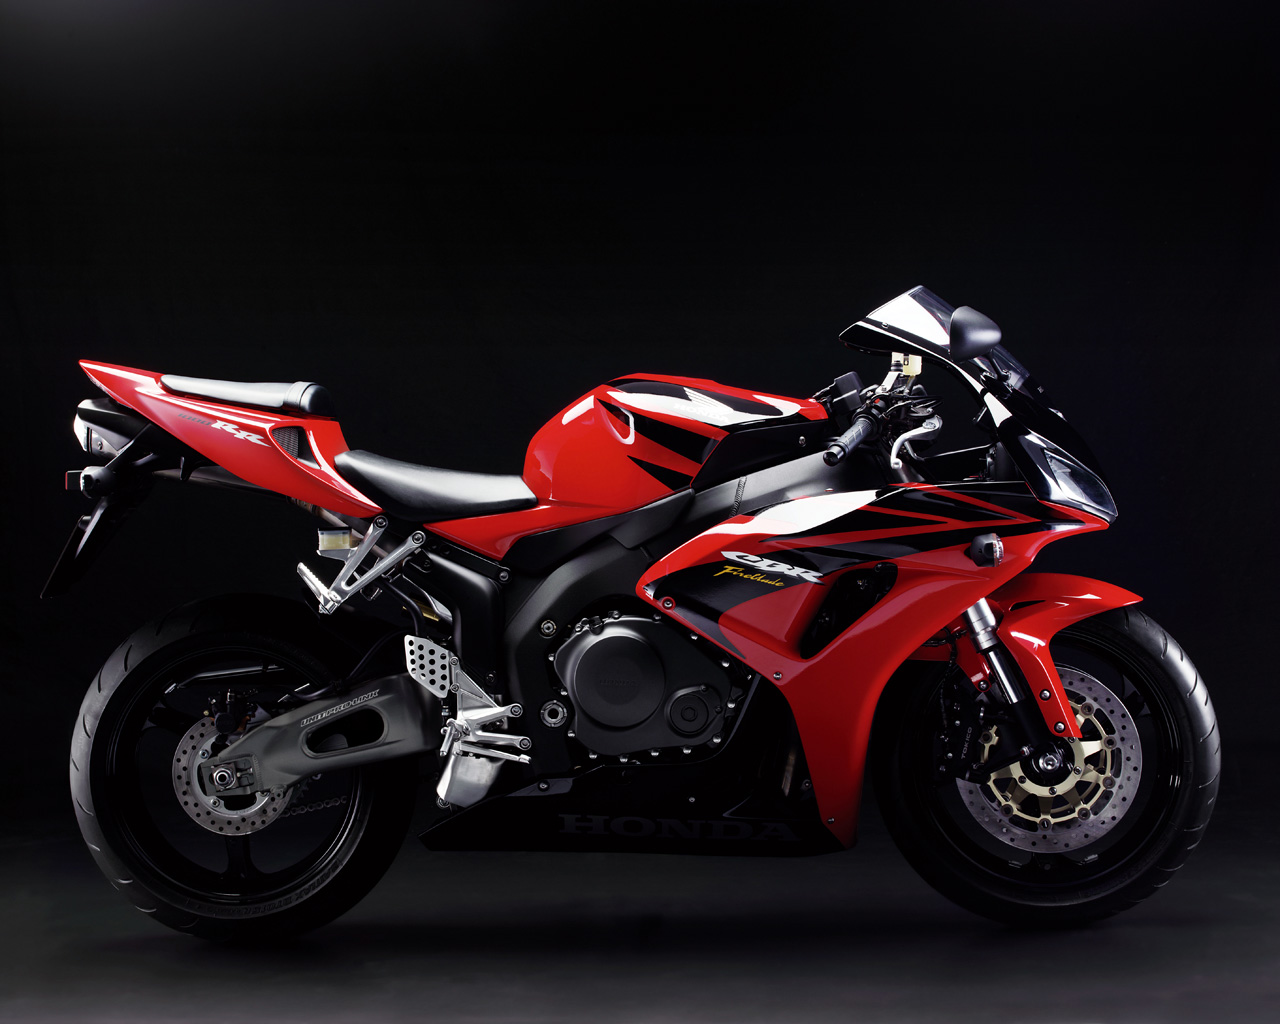 Types Of Motorcycle And Different Models 04 Cbr 600rr Wiring Diagram